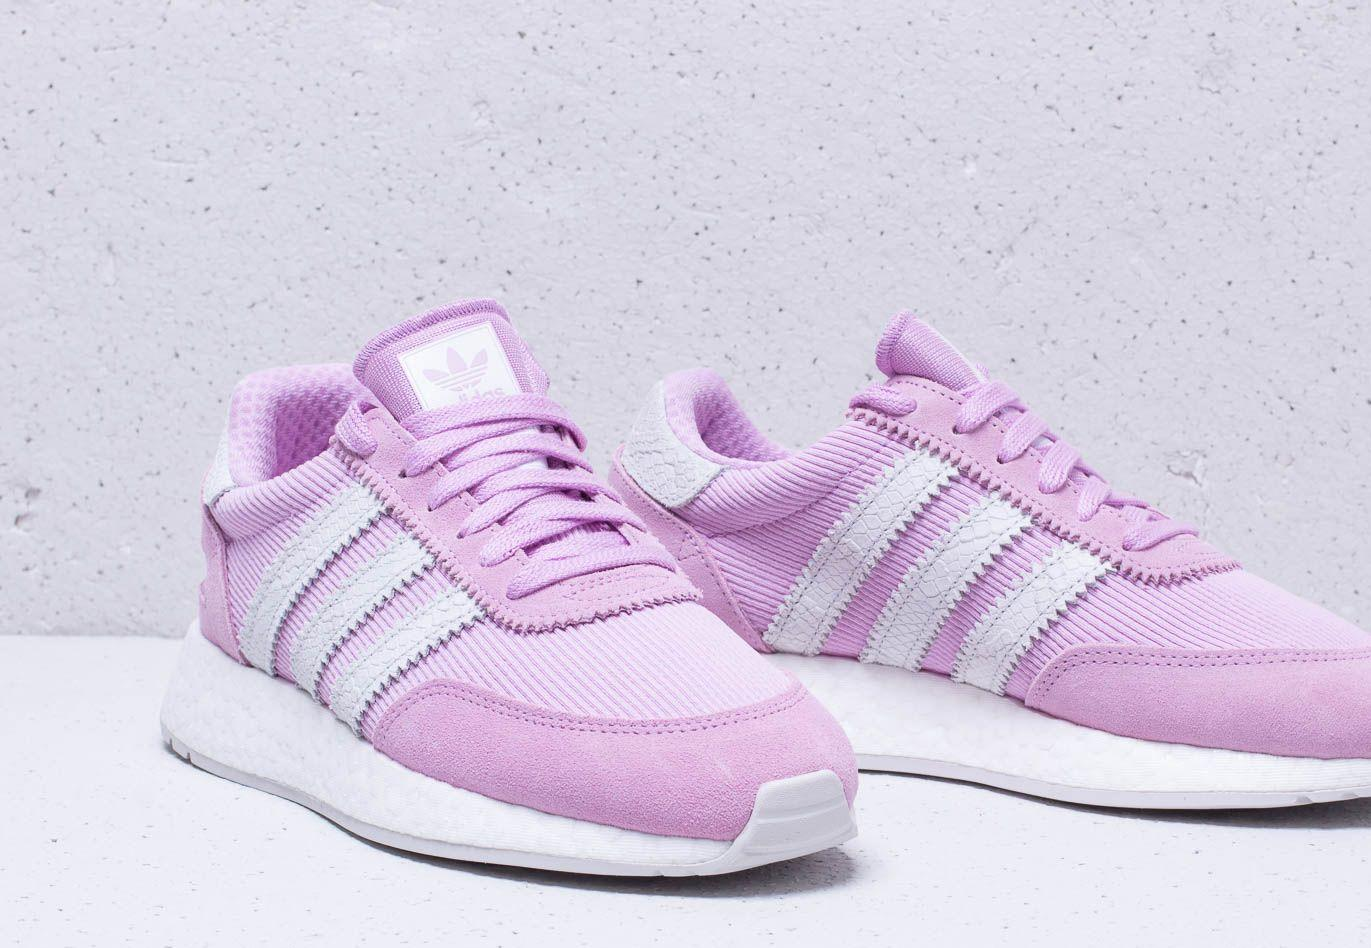 check out 65a5e 33314 ... Adidas I-5923 W Pink  Clear Lilac  Crystal White. View fullscreen